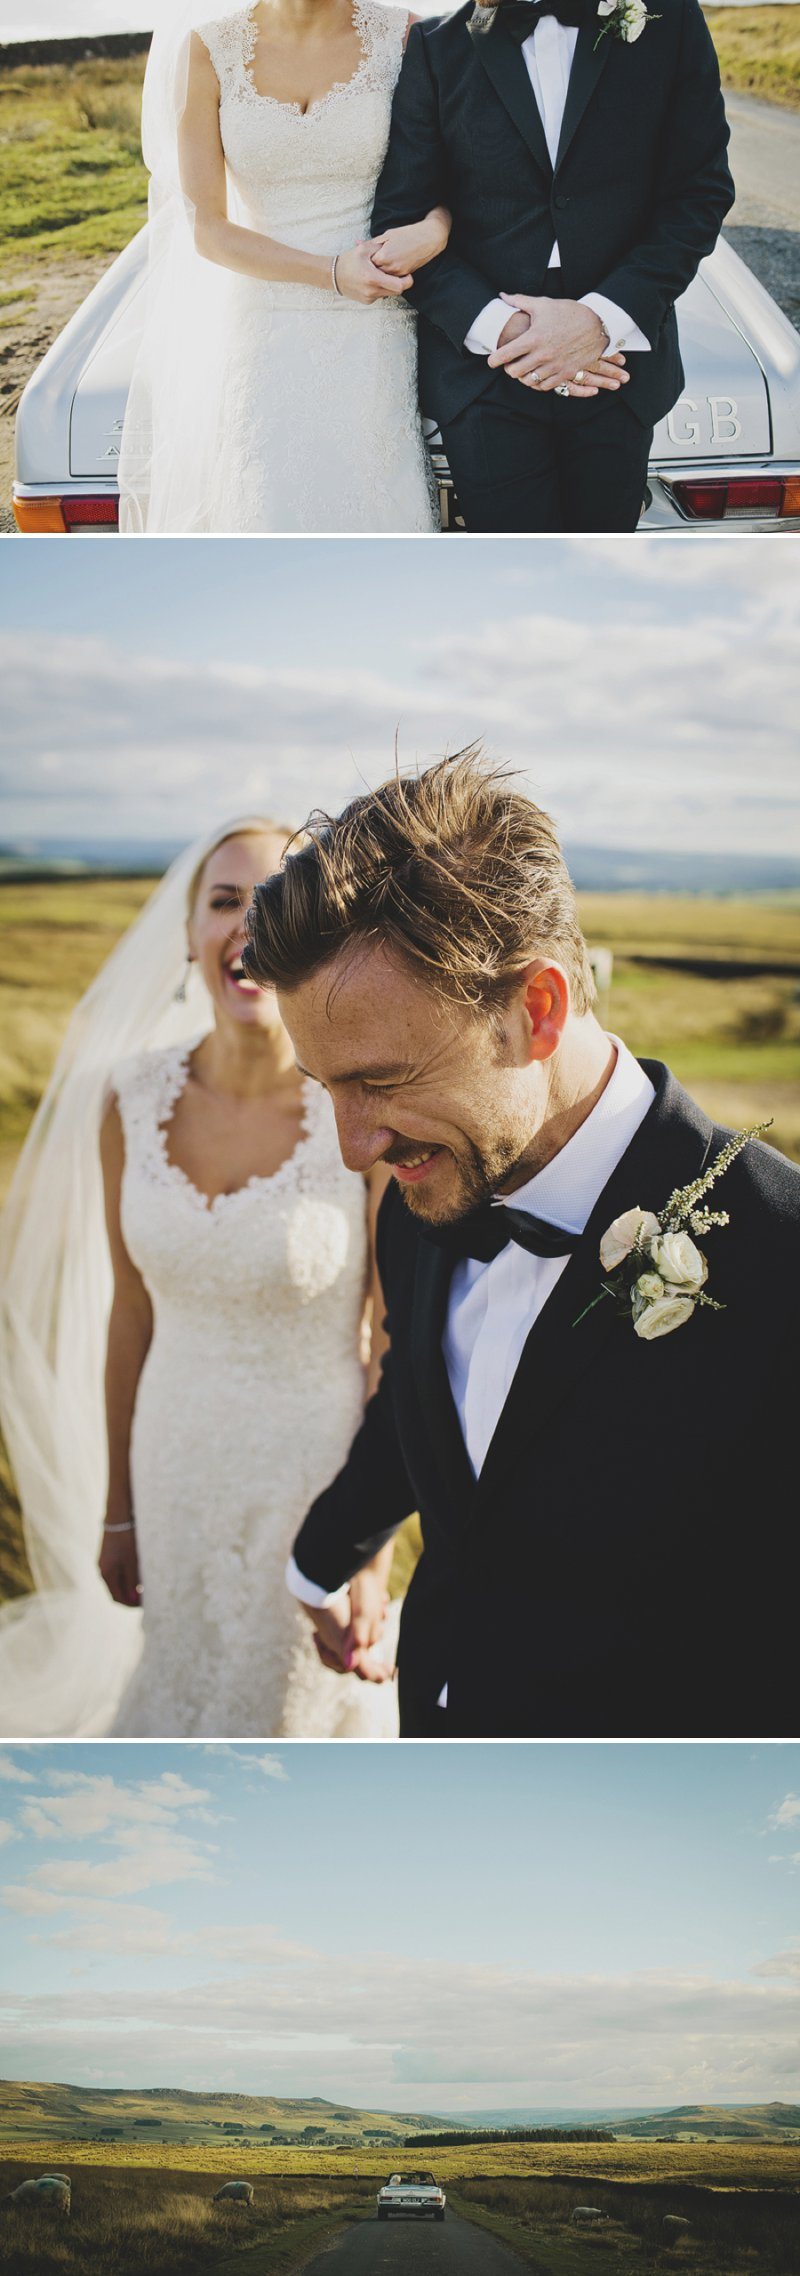 A Black Tie Luxury Wedding In Yorkshire With A Justin Alexander Dress A Bespoke Halo & Co Pale Gold Veil And A Rose And Pink Jasmine Bouquet Photographed By John Day._0013